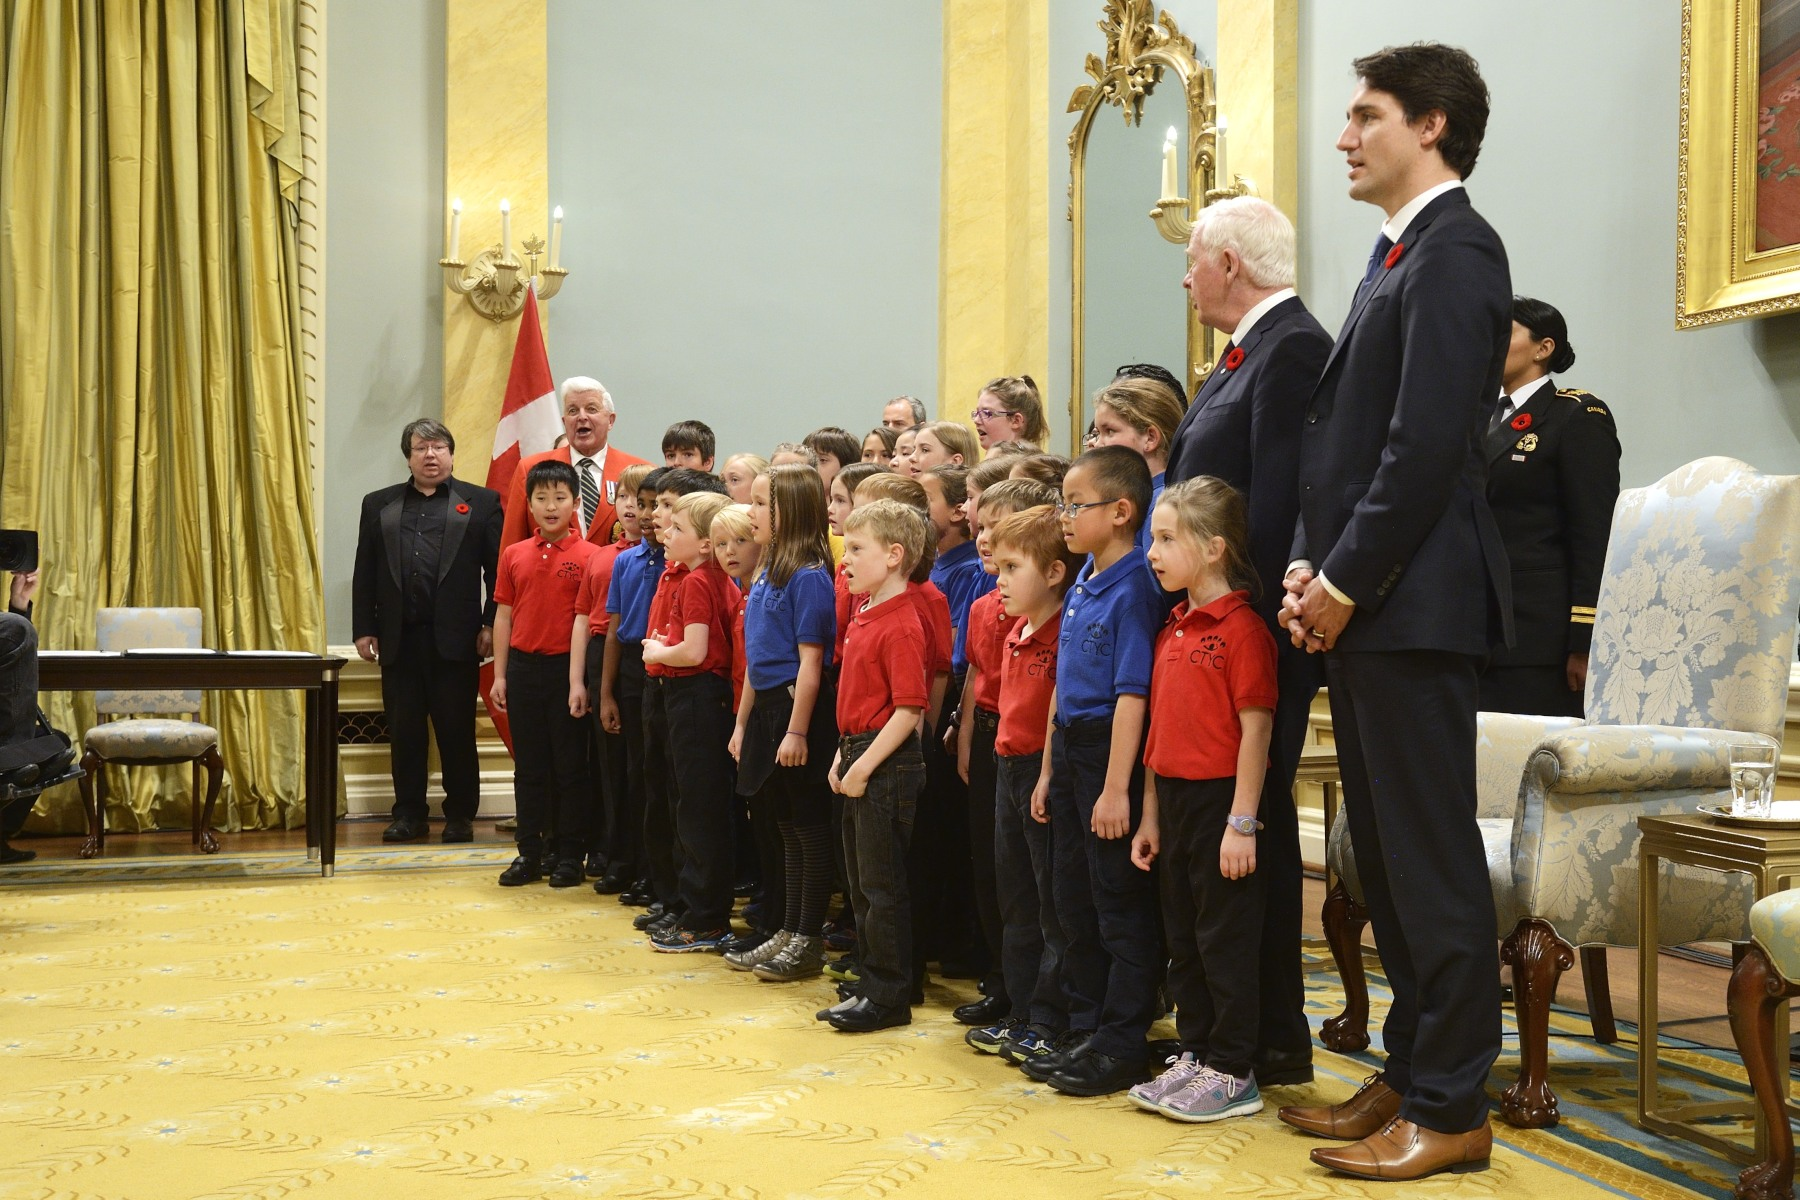 The swearing-in ceremony ended with the National Anthem sung by the Cross Town Youth Chorus.